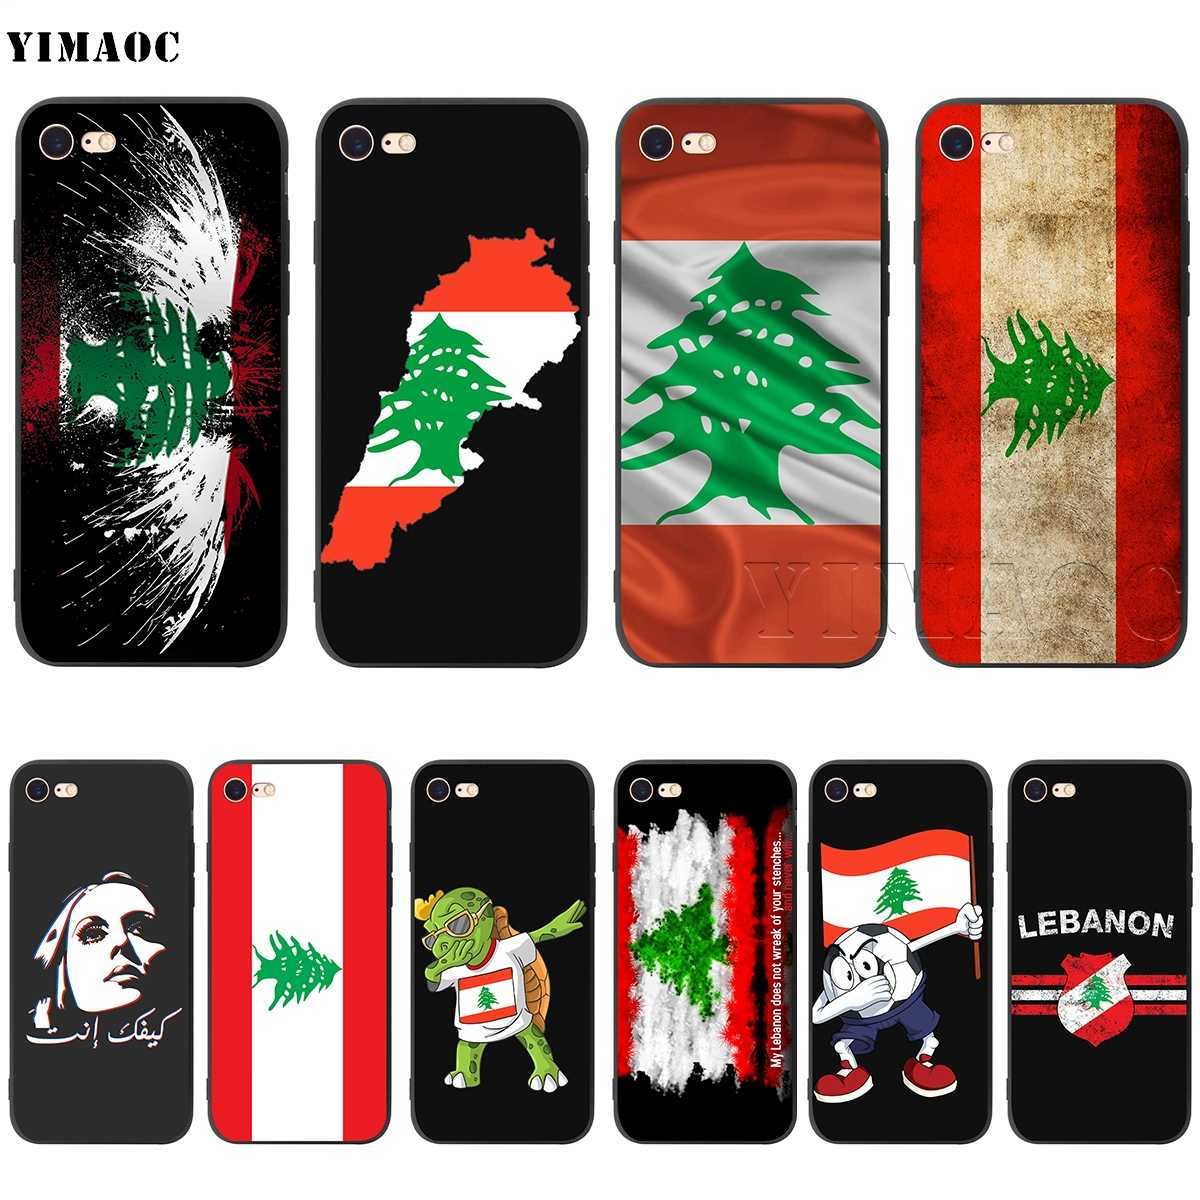 YIMAOC Lebanese Lebanon Flag Silicone Soft Case for iPhone 11 Pro XS Max XR X 8 7 6 6S Plus 5 5S SE